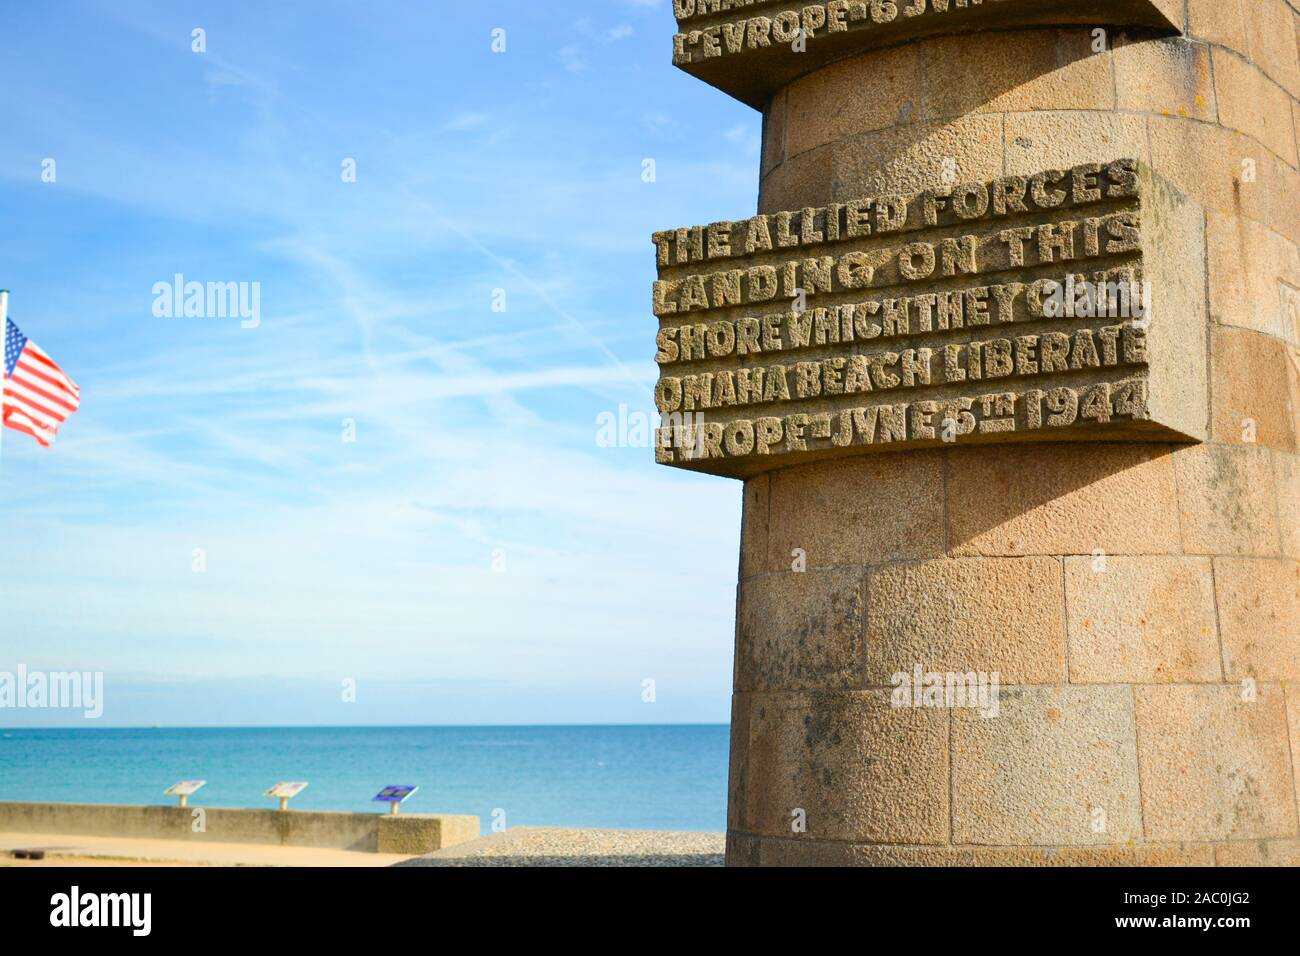 The Omaha Beach memorial to the fallen American Troops who died during the D Day invasion of World War 2 in Normandy France. Stock Photo